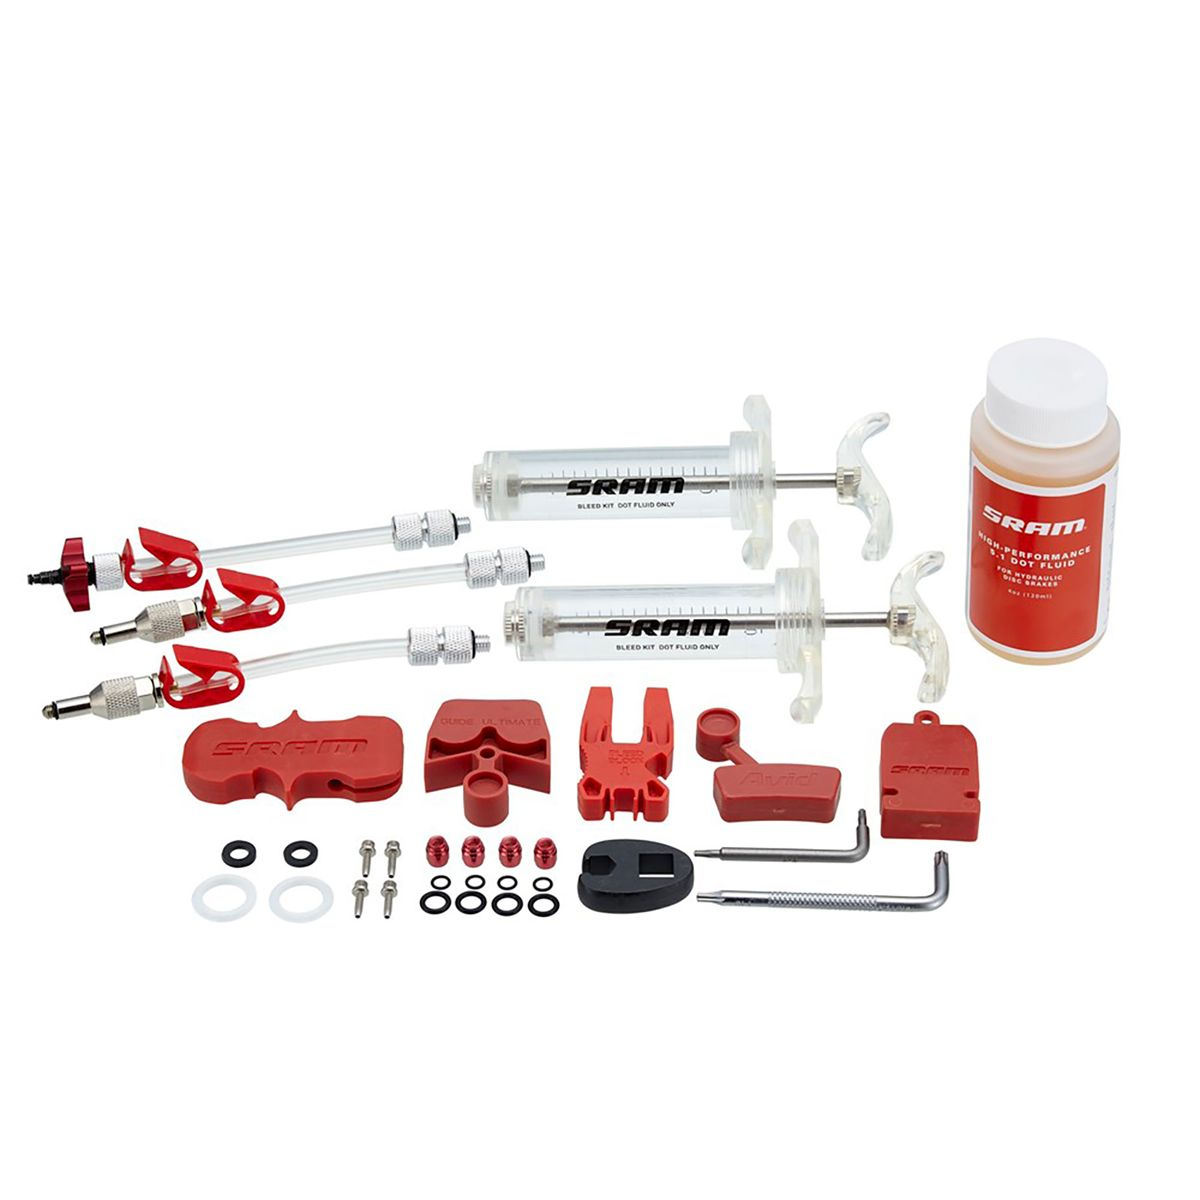 SRAM Professional bleed kit incl. brake fluid | polish_and_lubricant_component